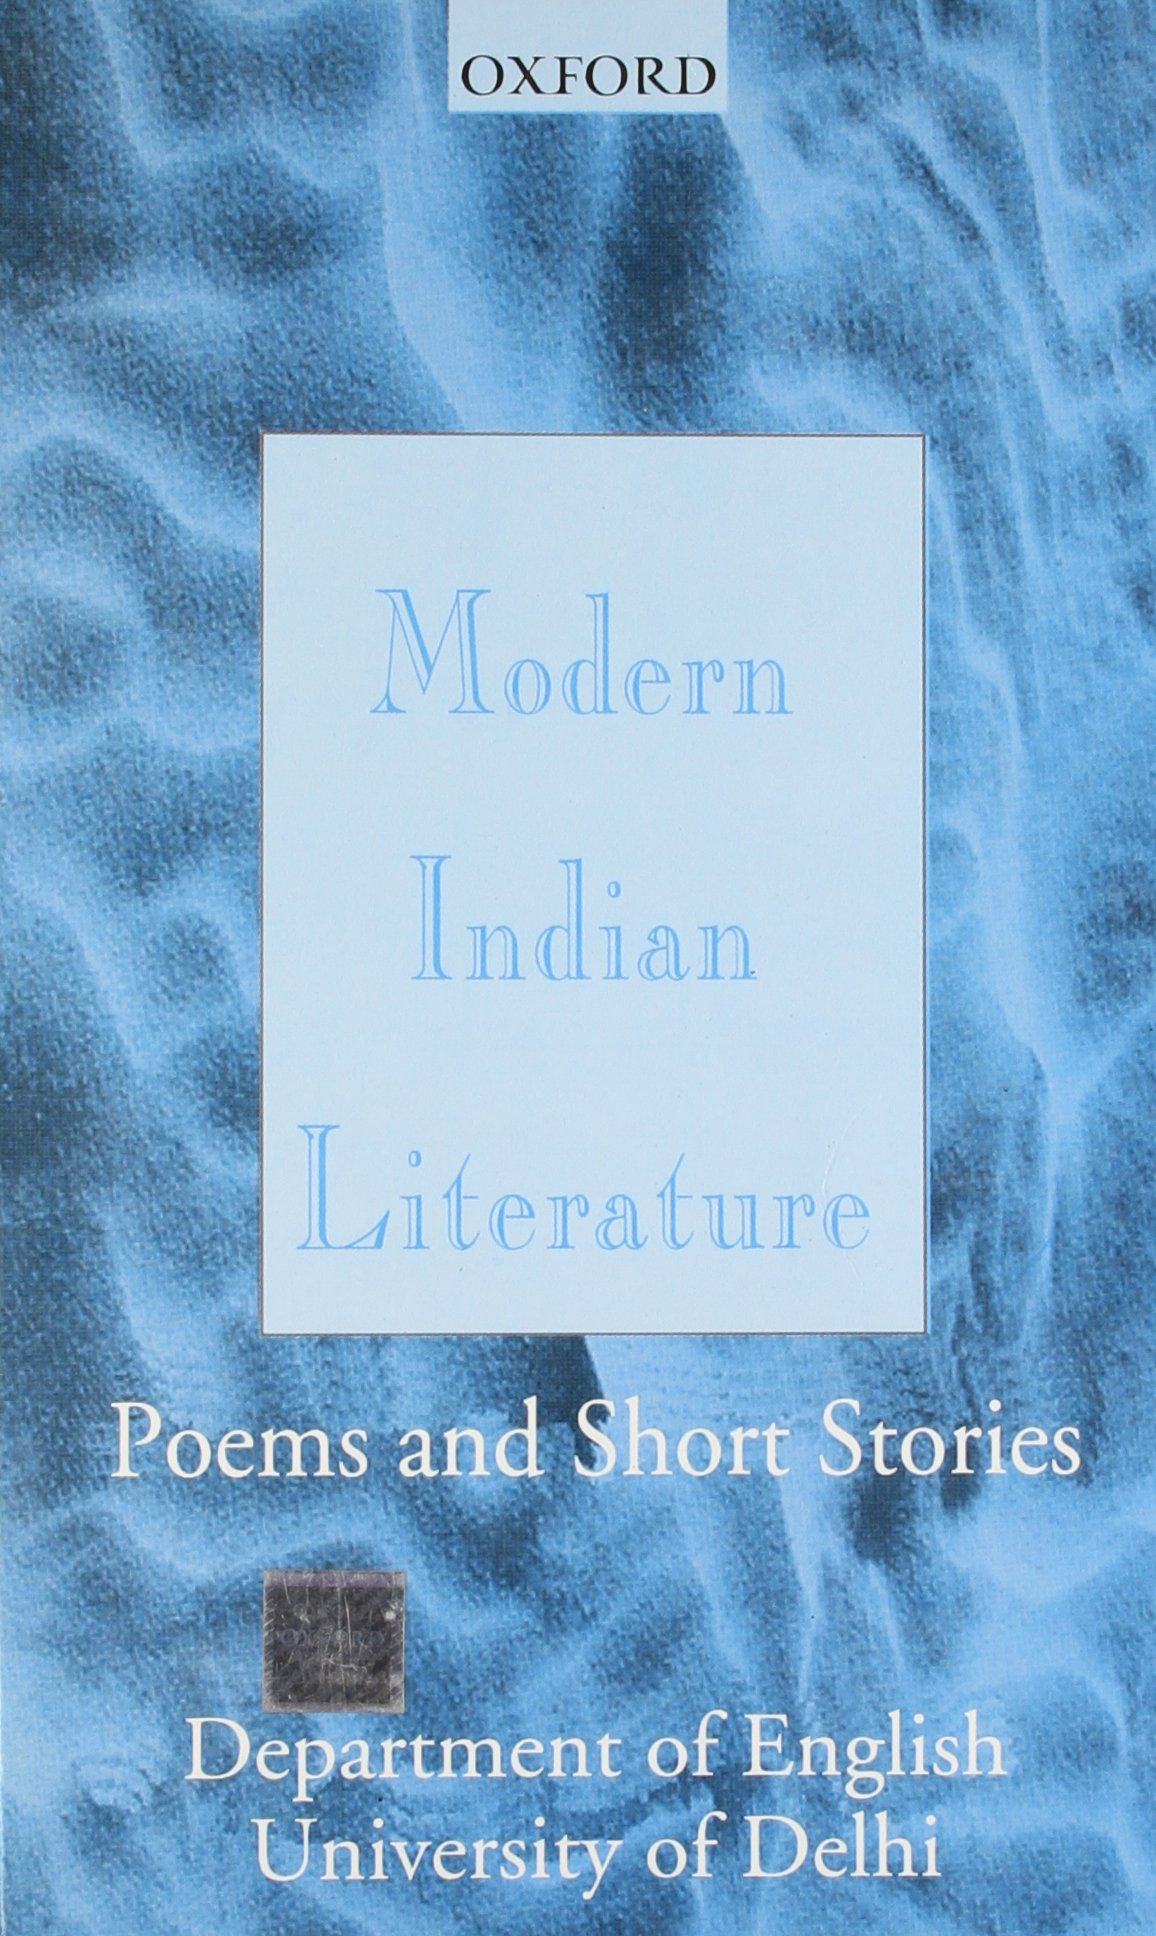 Modern Indian Literature: Poems and Short Stories Paperback – 1 Jul 1999